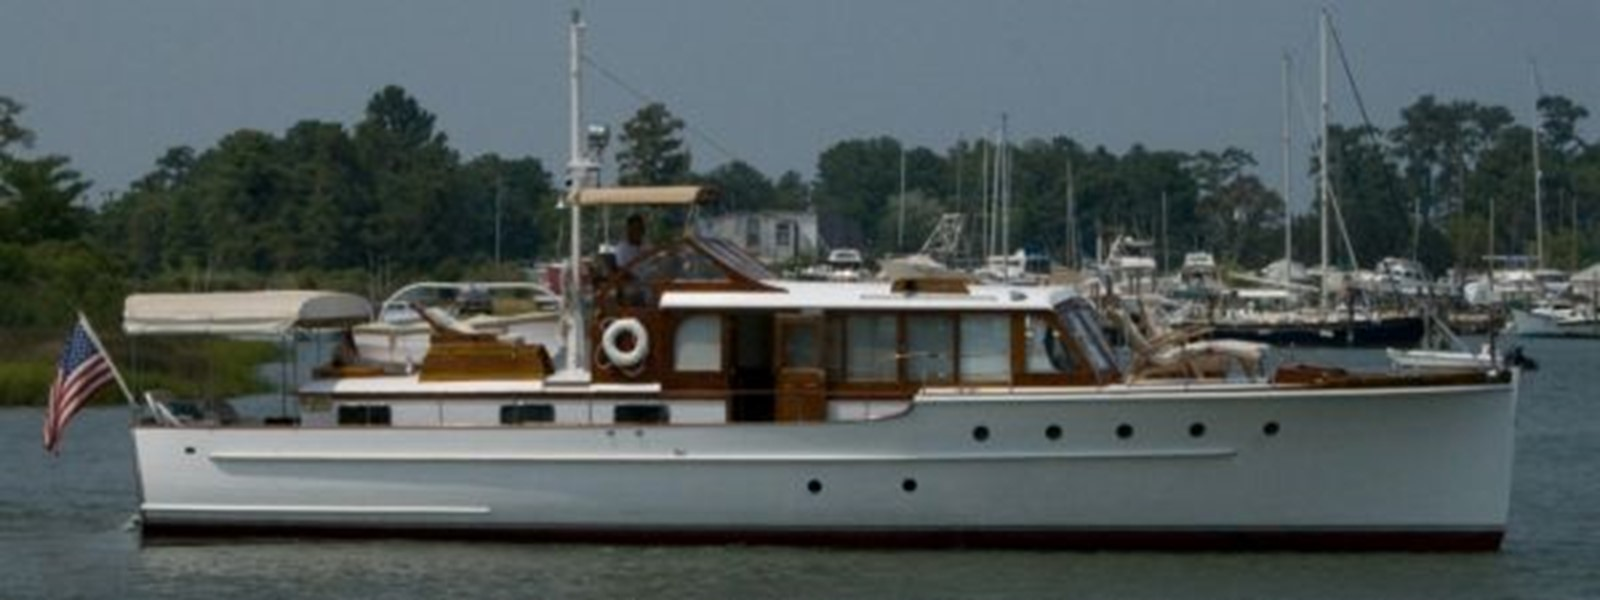 53' Elco - Starboard Side - 53 ELCO MARINE For Sale